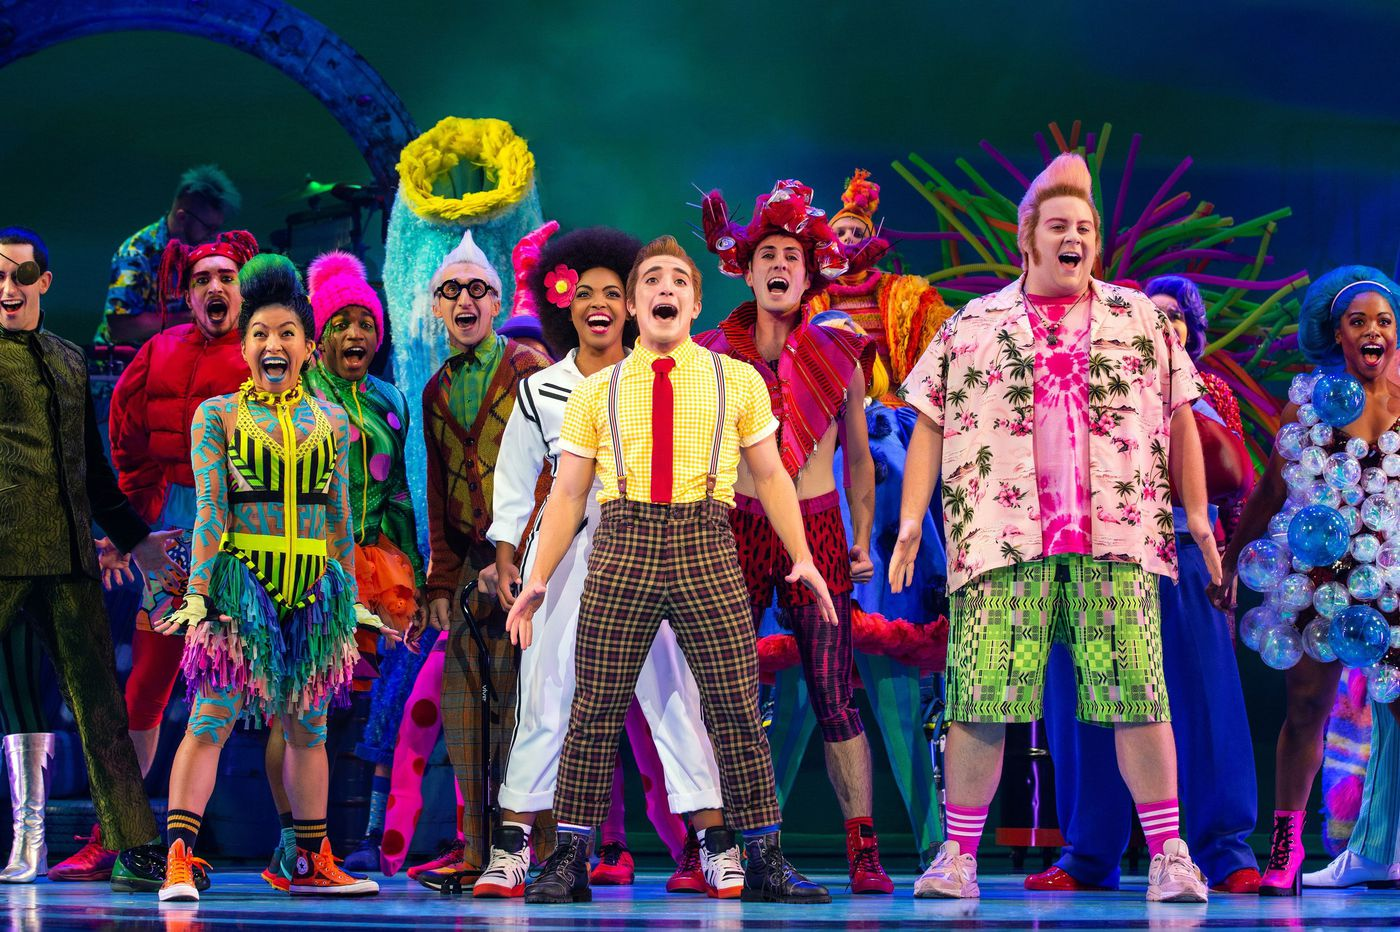 'The SpongeBob Musical' at Forrest Theatre is gloriously giddy, and smart, too